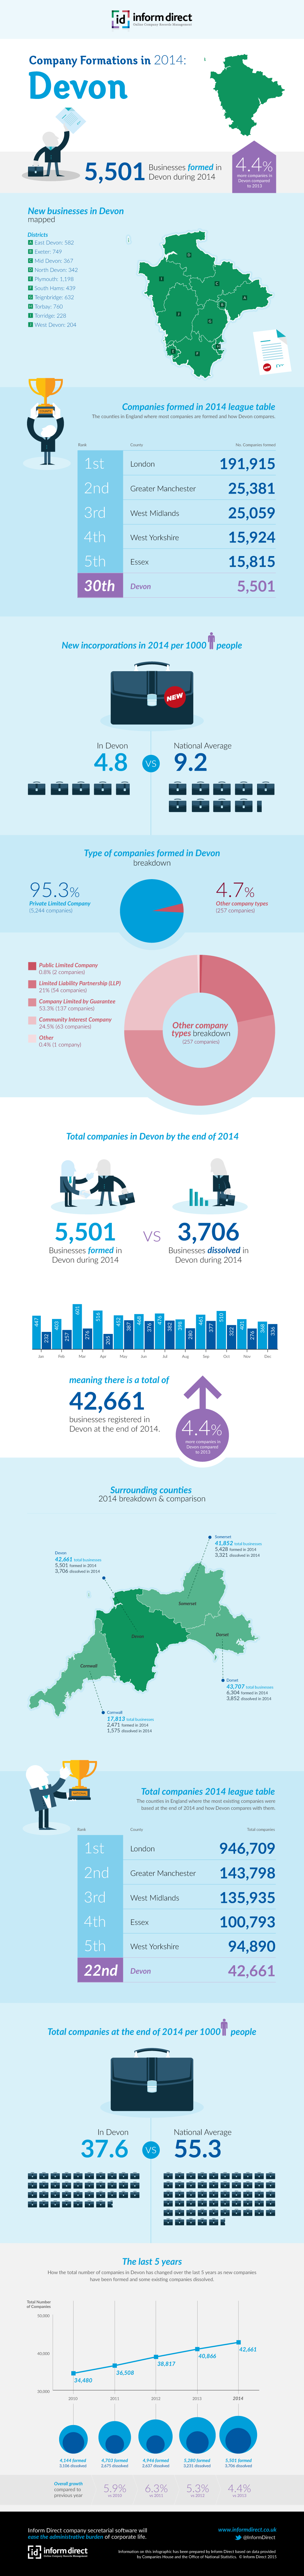 Inform Direct - Company Formations in Devon 2014 Infographic